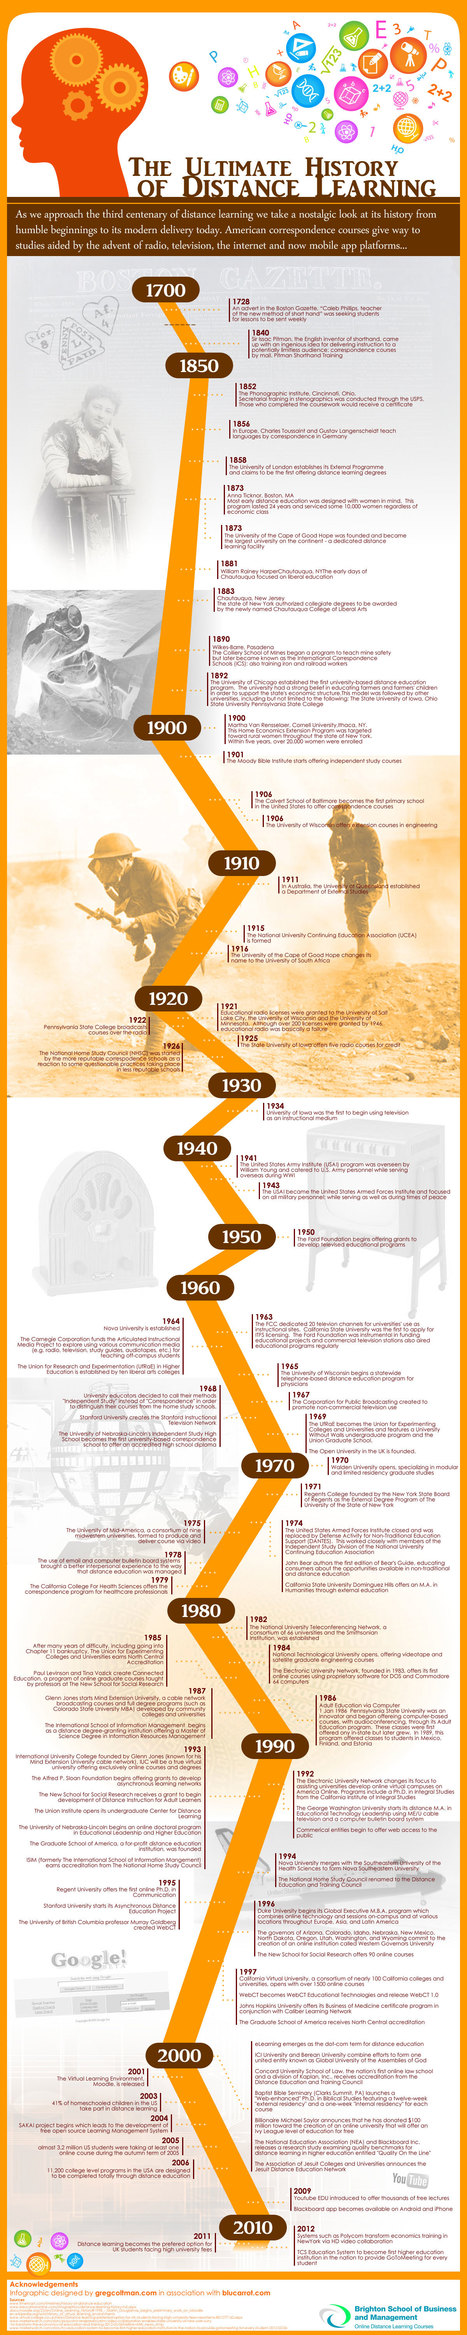 The History of Distance Learning as an Infographic | omnia mea mecum fero | Scoop.it